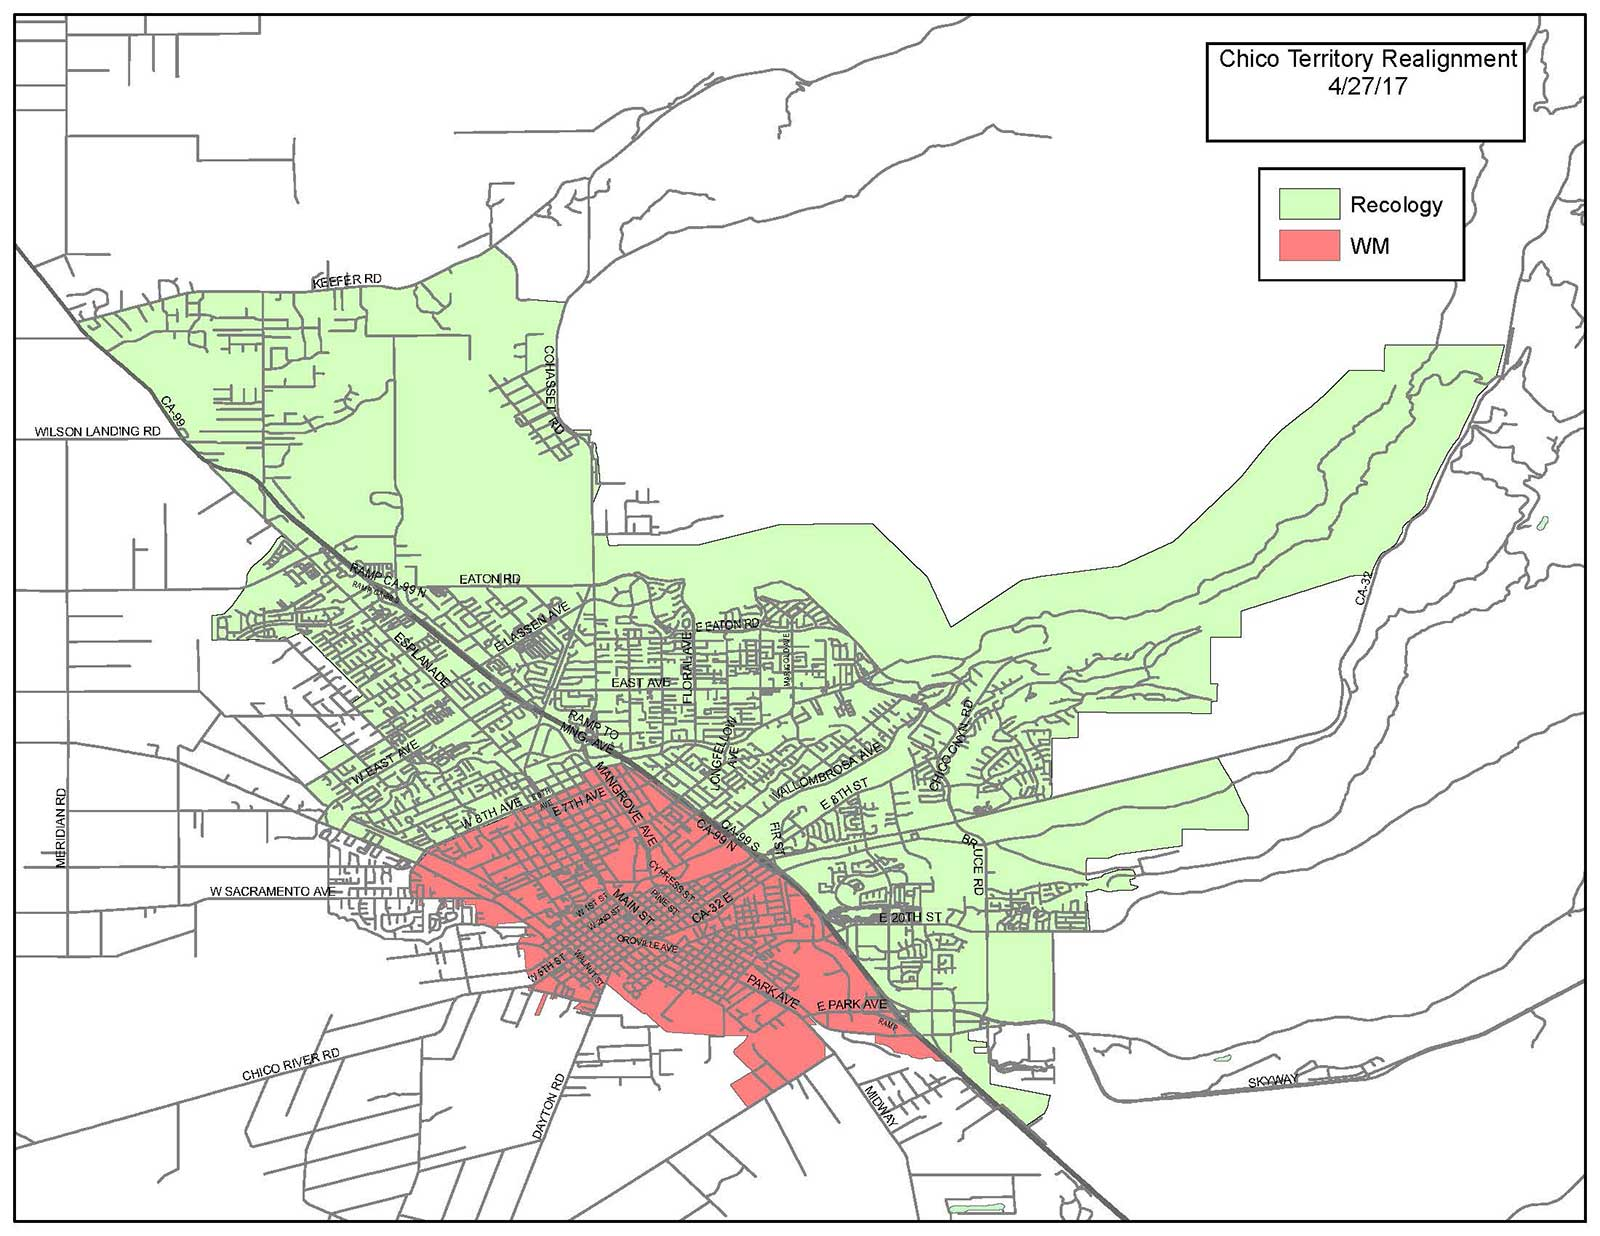 City of Chico Waste Management Commercial Services Chico Map on etiwanda map, amador map, brooktrails map, de cordova map, gorda map, cedar ridge map, wolfe city map, visalia tulare map, auberry map, hayfork map, vacaville map, linda map, butte county city map, 1000 palms map, enloe map, burney map, gaviota beach map, archer city map, snelling map, halsey map,